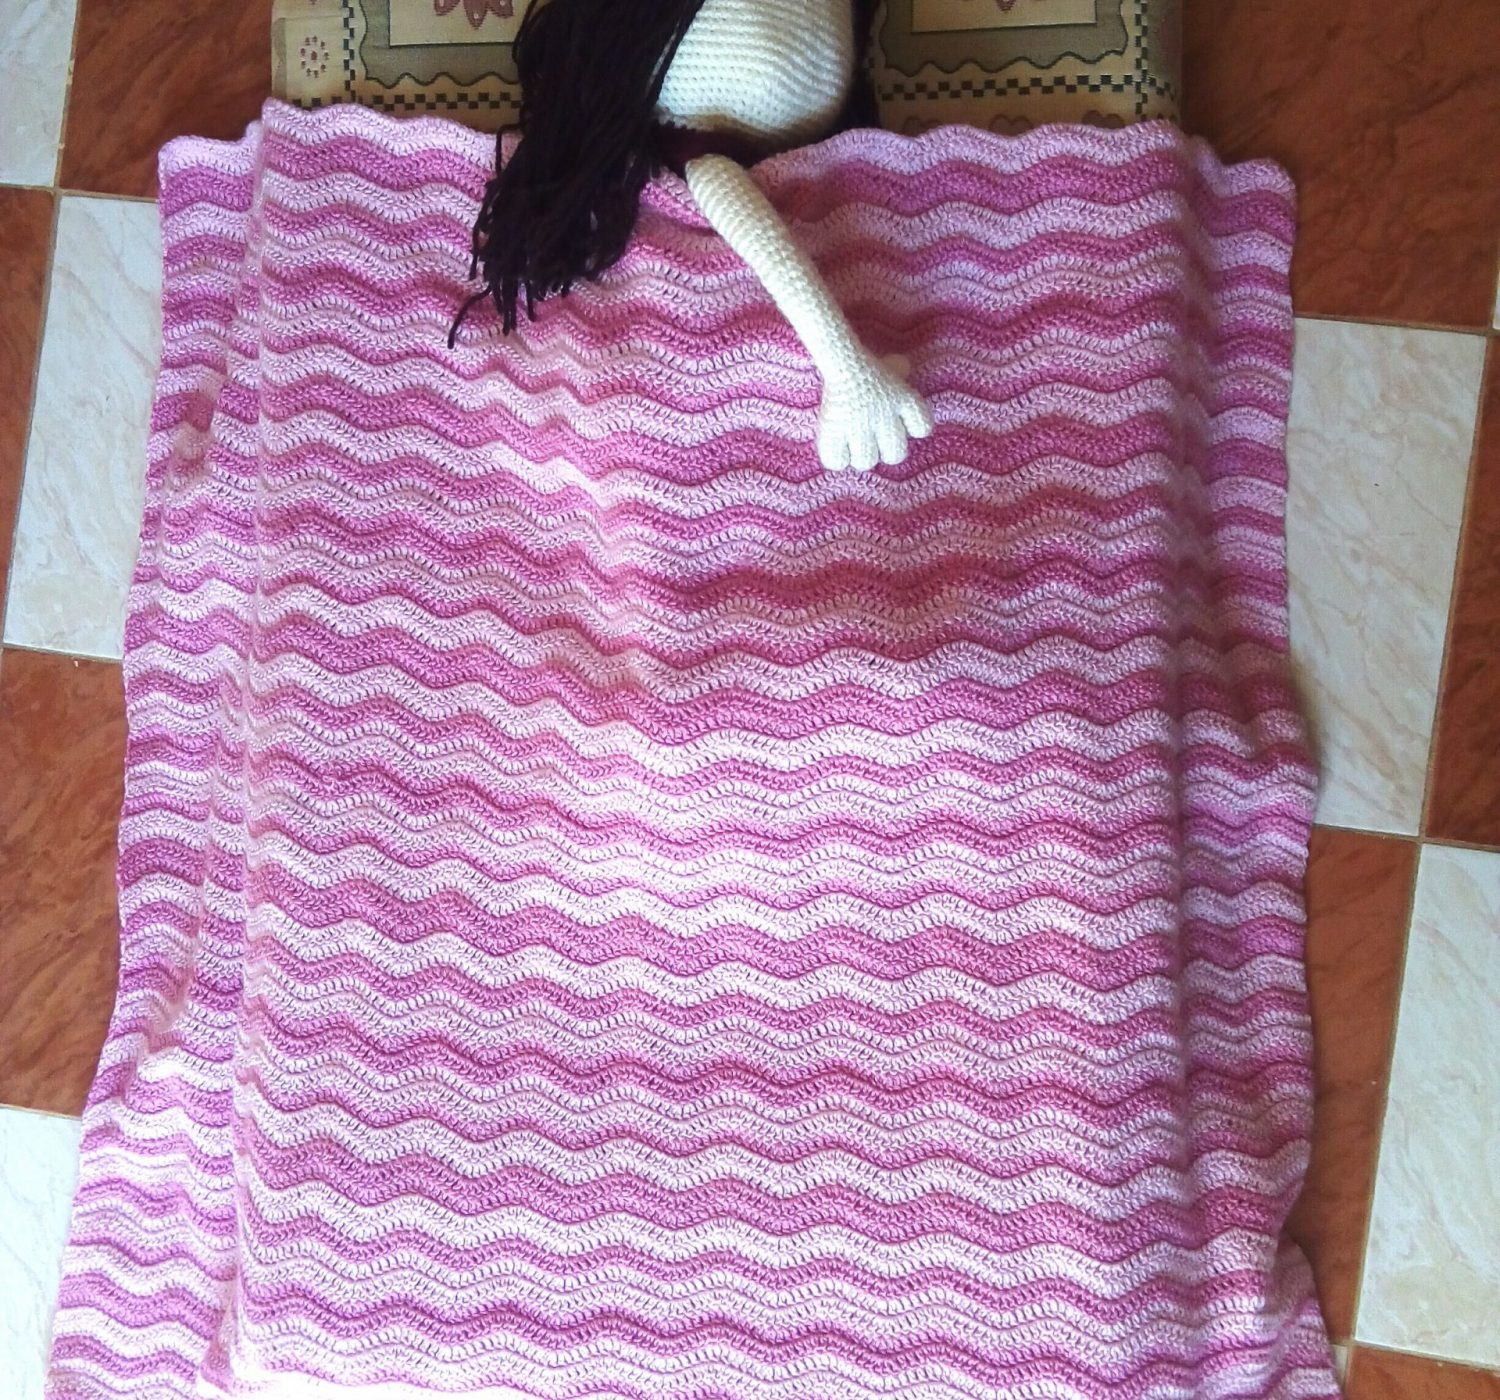 Crochet Baby Blanket Free Pattern – Ripple and Easy!